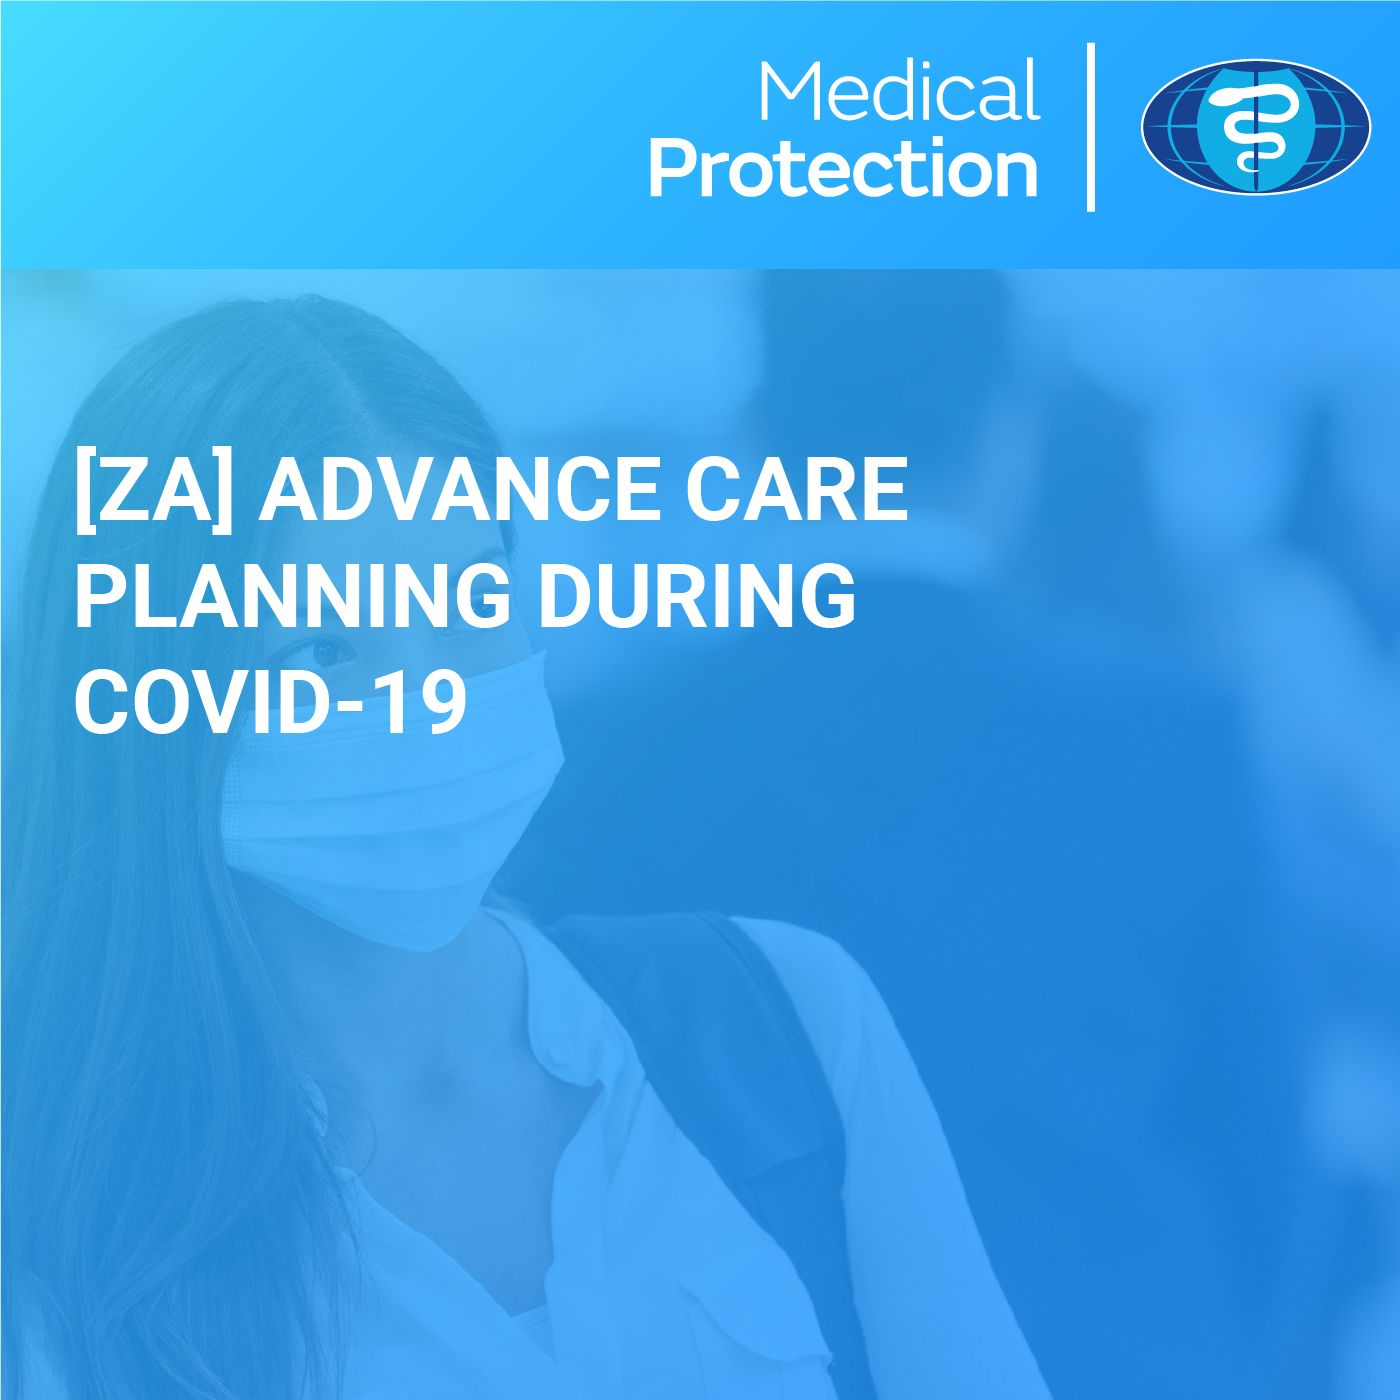 [ZA] Advance care planning during COVID-19